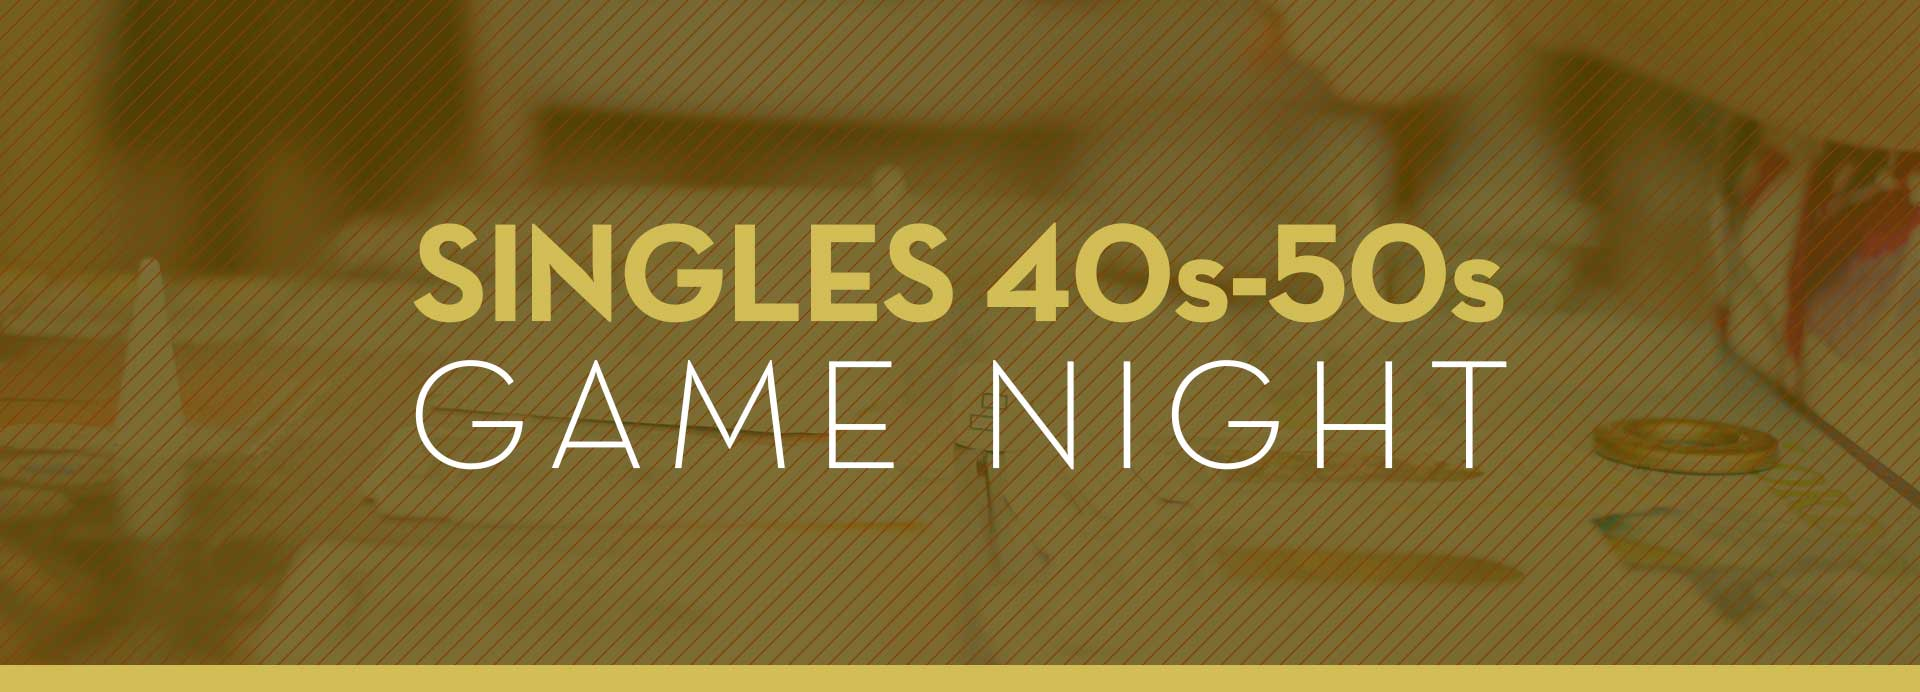 Singles40s-50s_Game-Night_1920x692.jpg